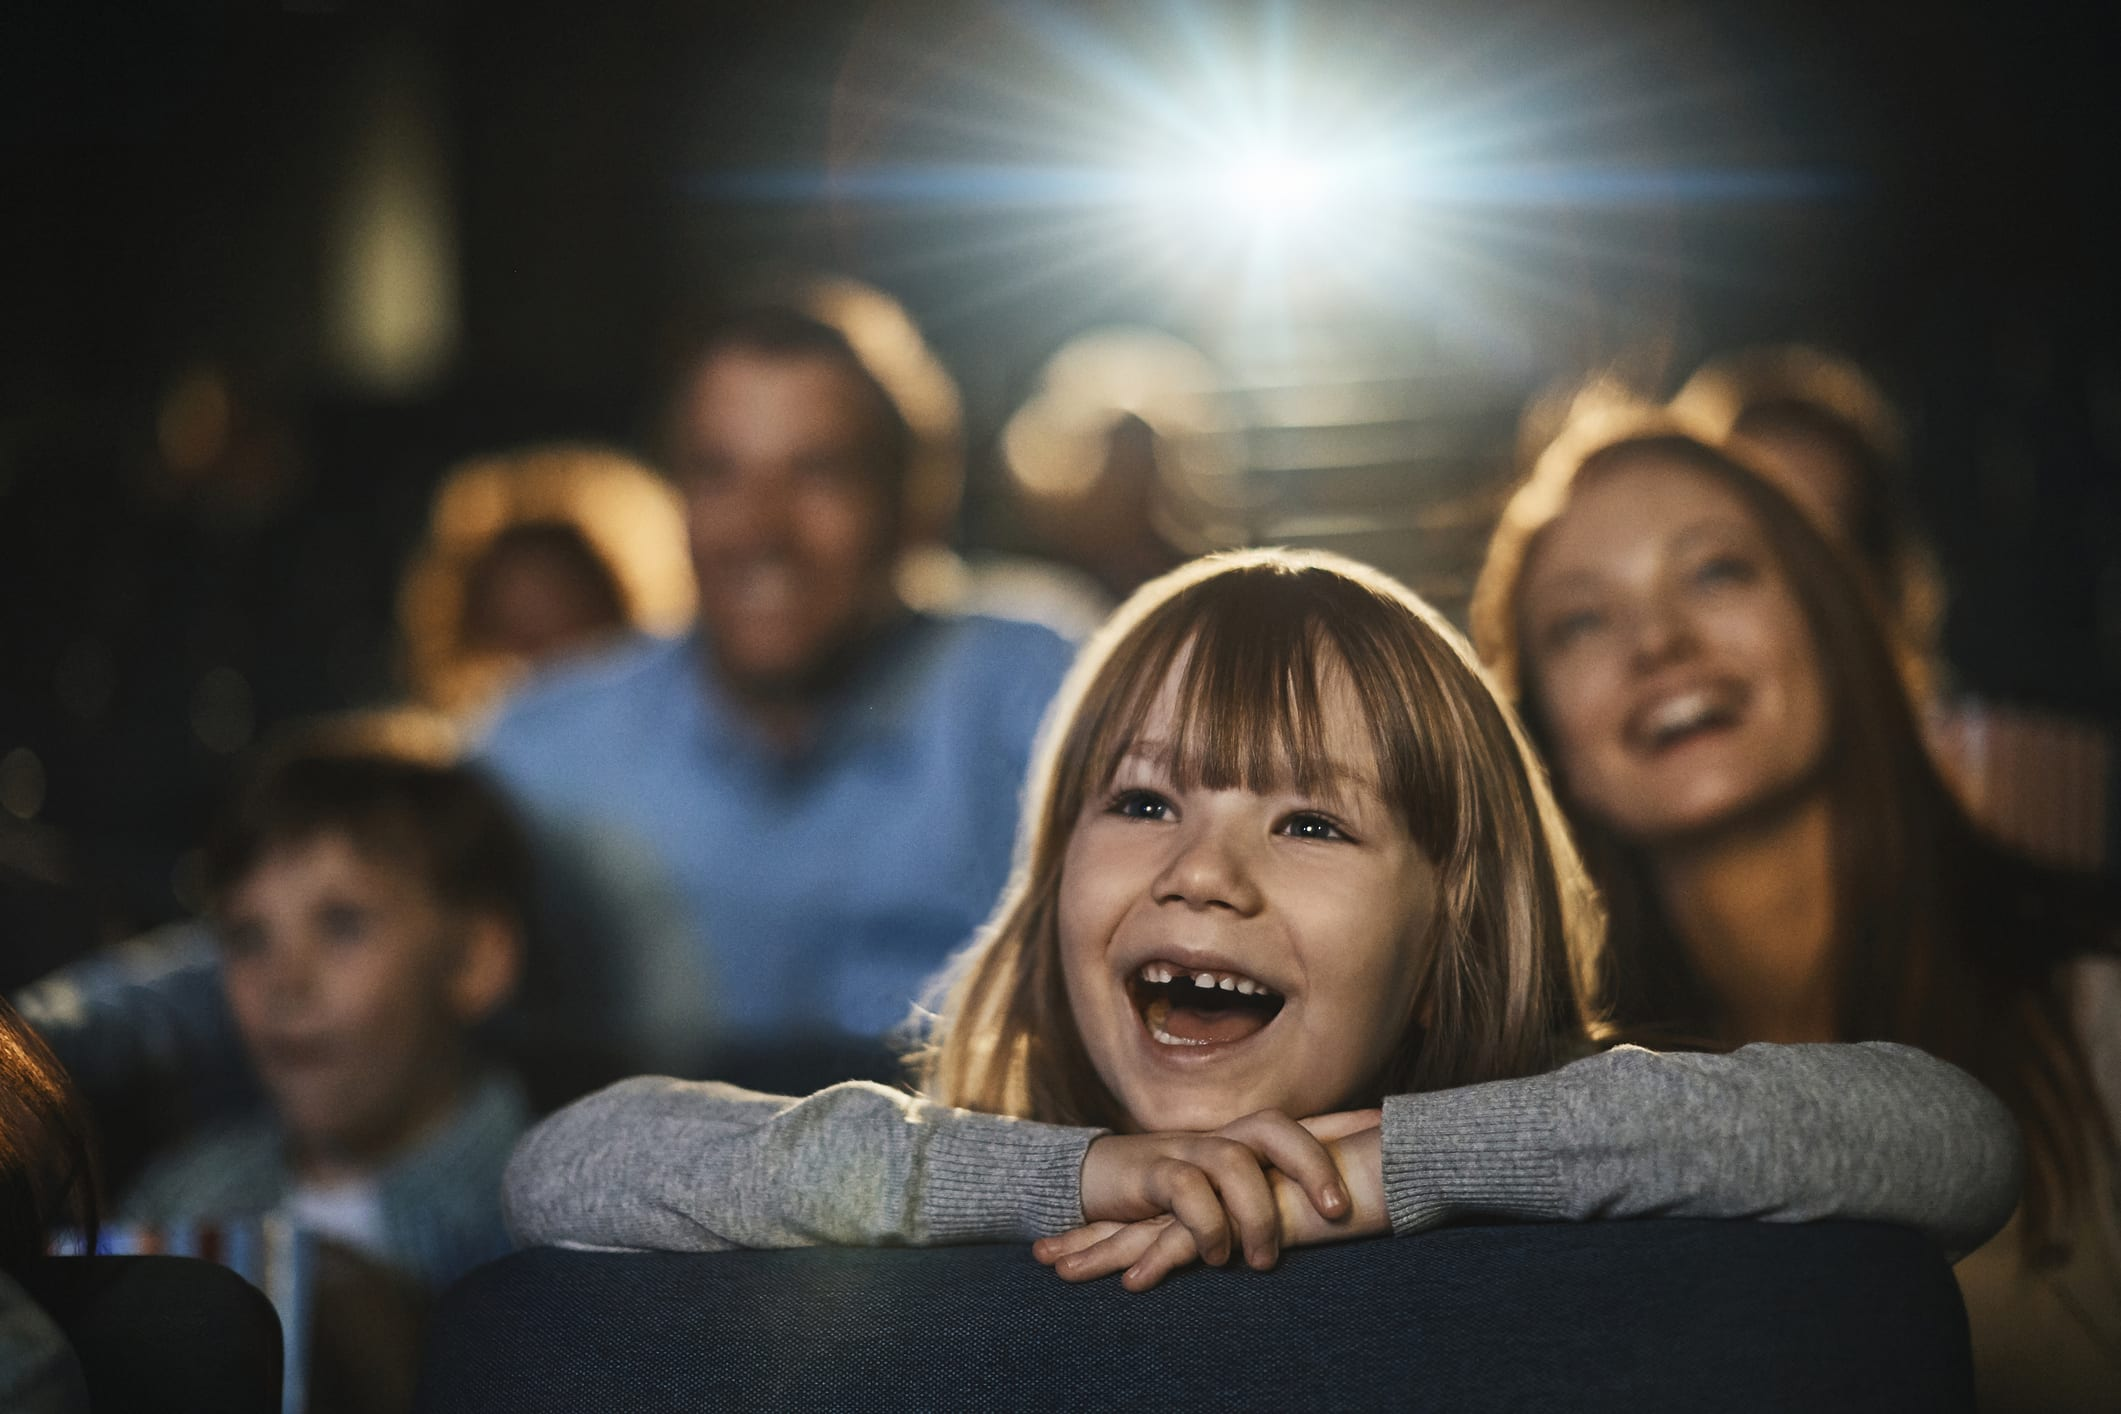 Little Girl Smiling in the Theater